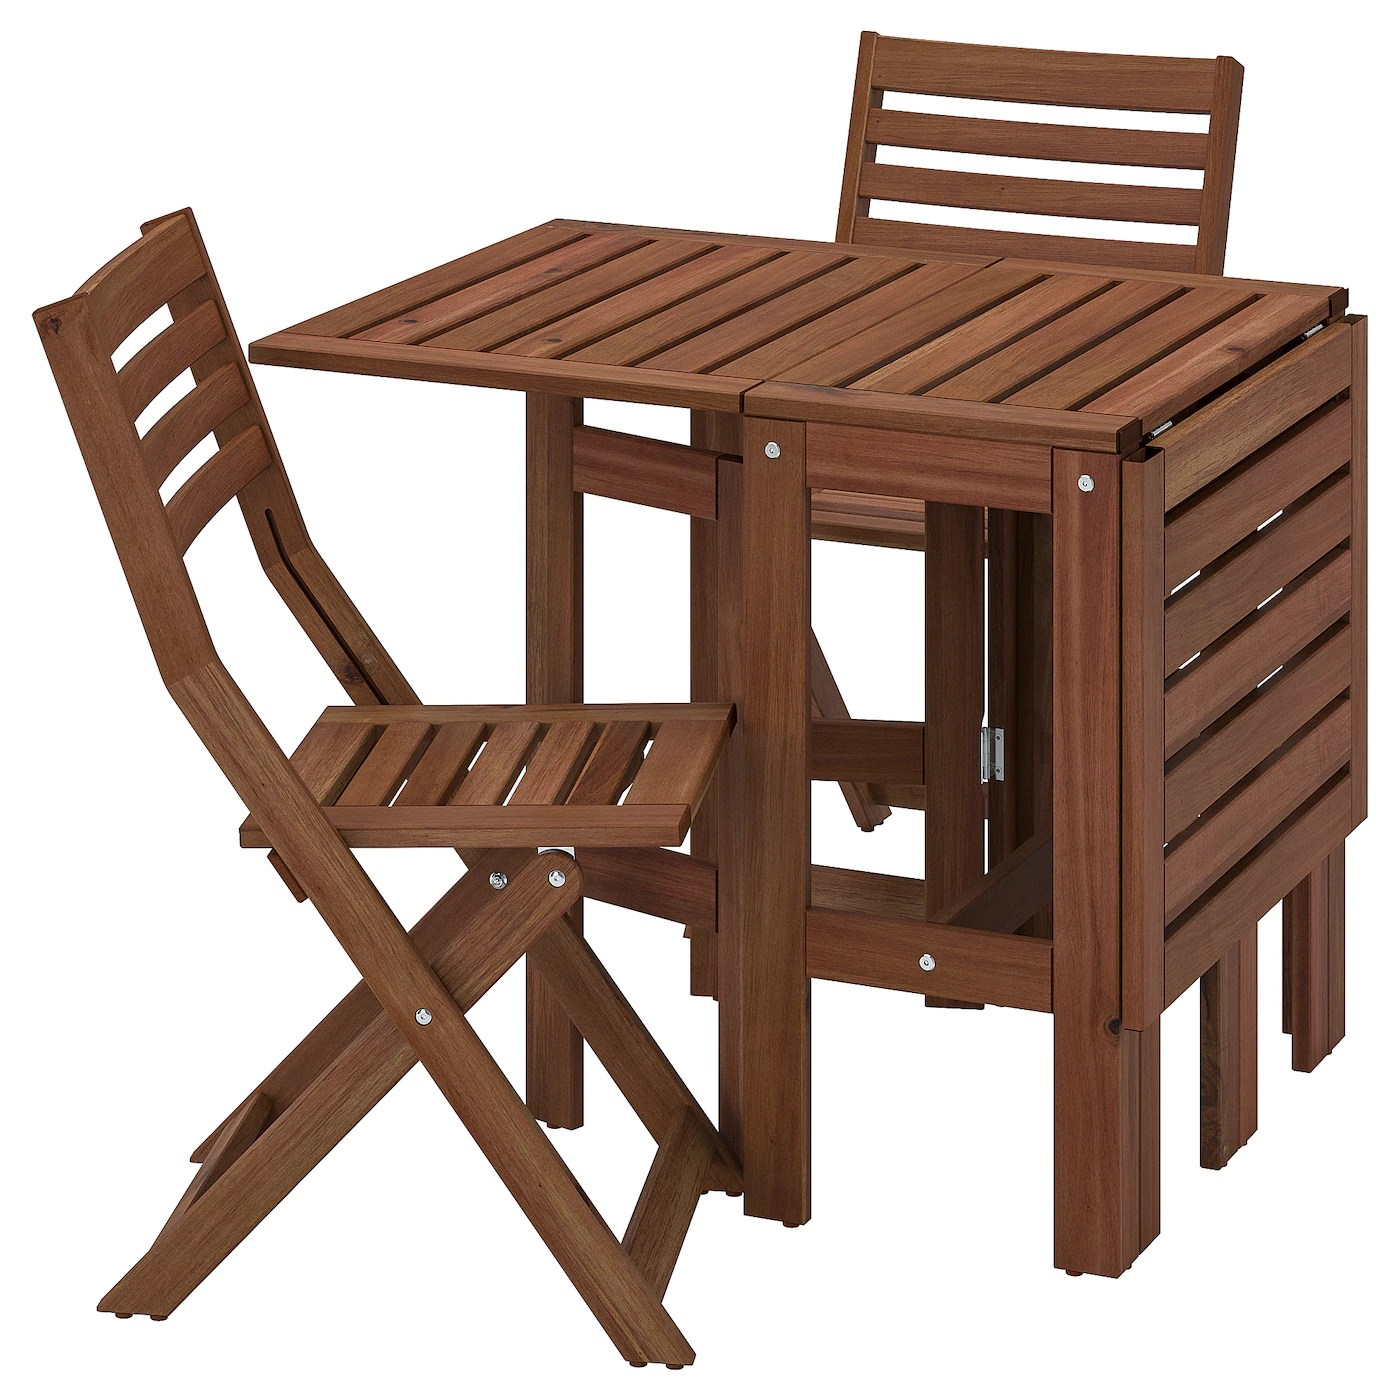 applaro table 2 folding chairs outdoor brown stained